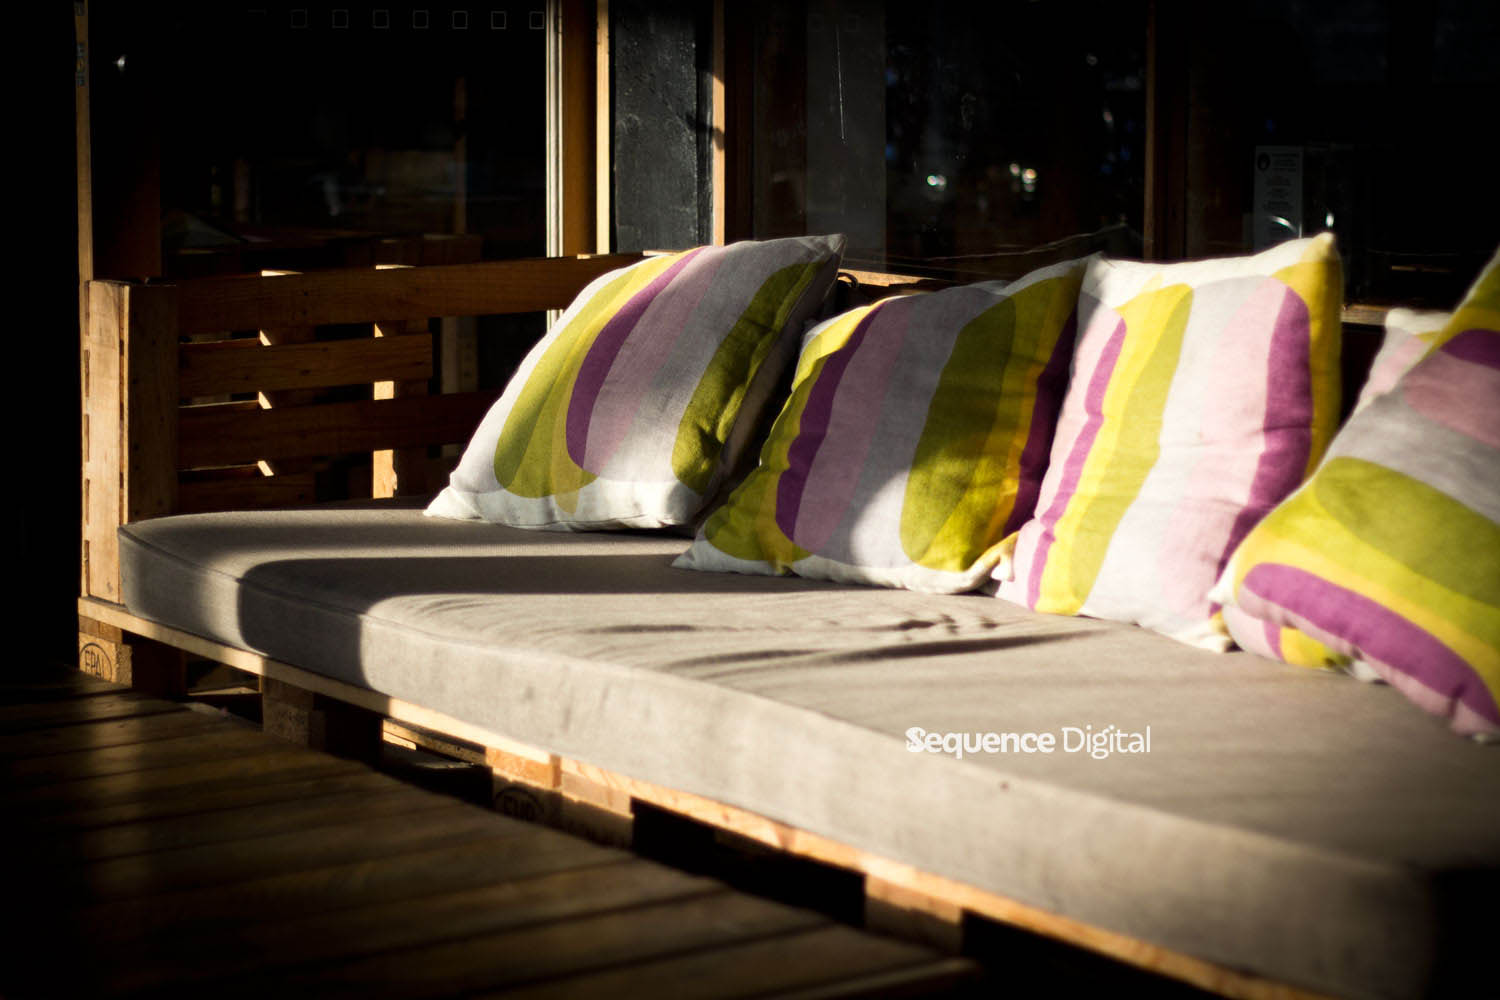 63 Degrees Cafe Geelong - Palete Couch